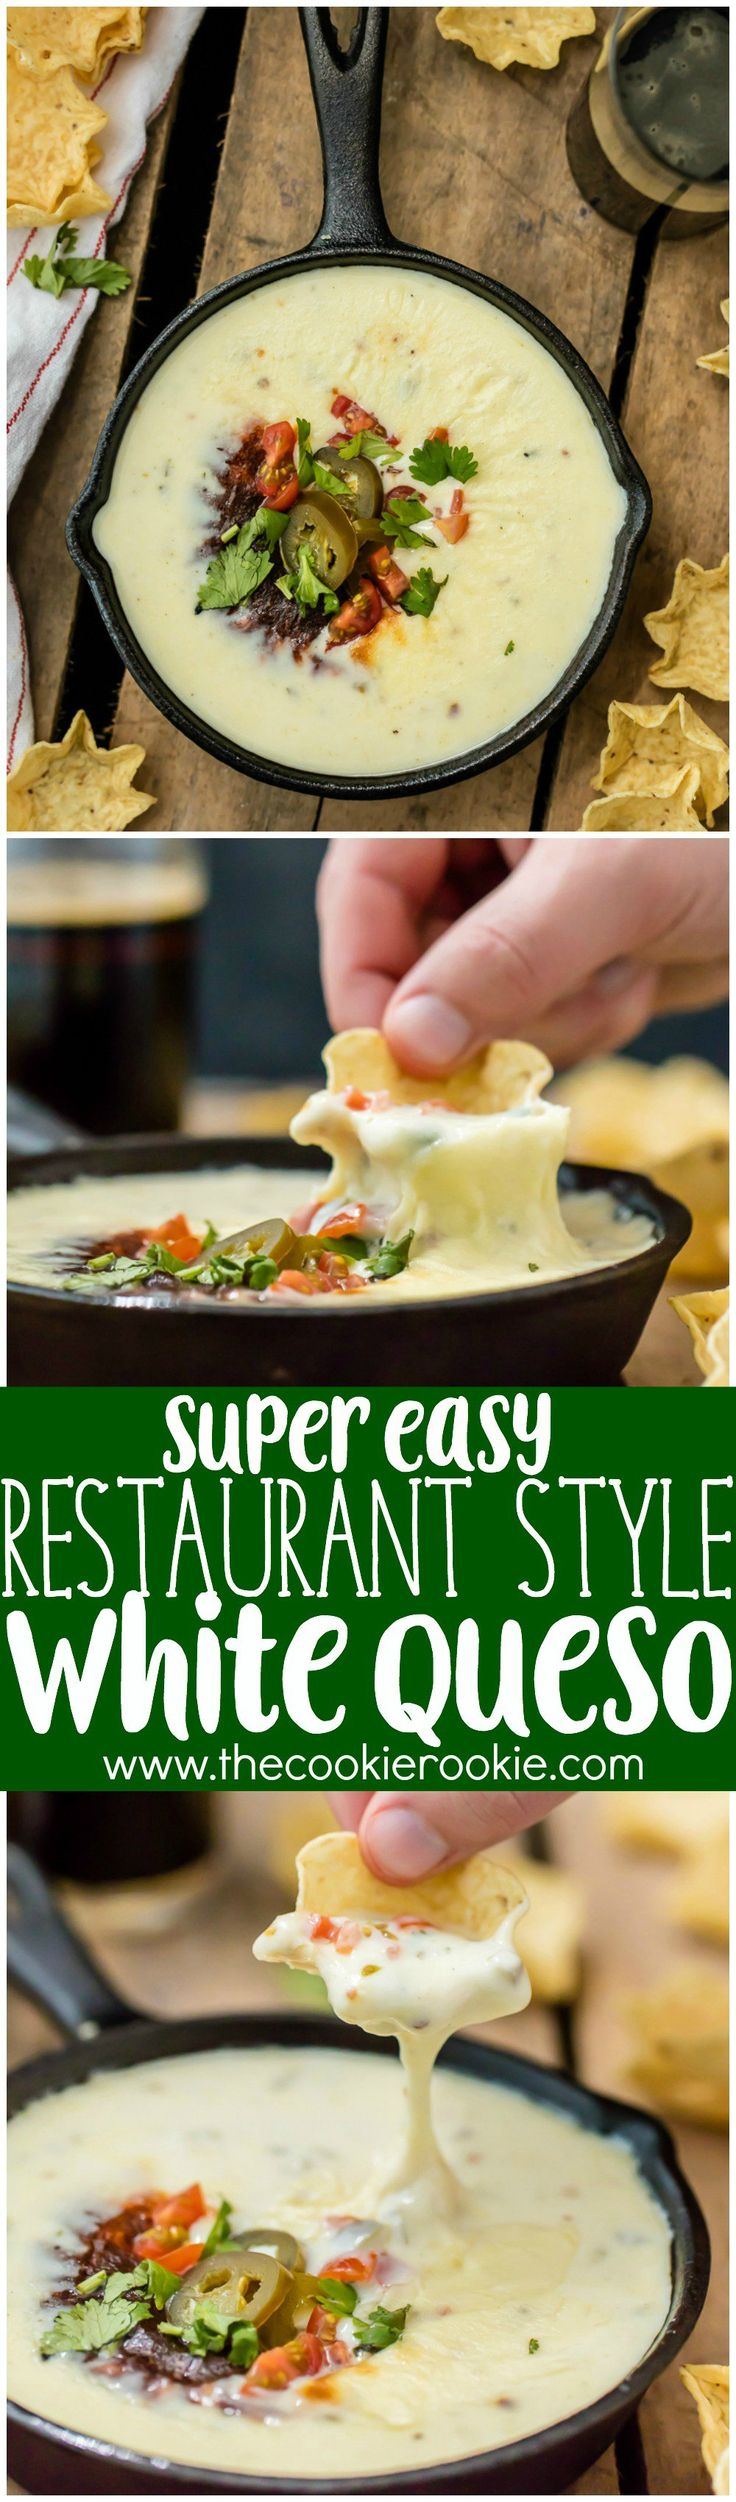 Easy Restaurant Style WHITE QUESO is our FAVORITE DIP RECIPE EVER. Tastes just like queso dip at Mexican restaurants! I have been waiting my entire life for this cheese dip recipe!  http://homeexchange.xyz